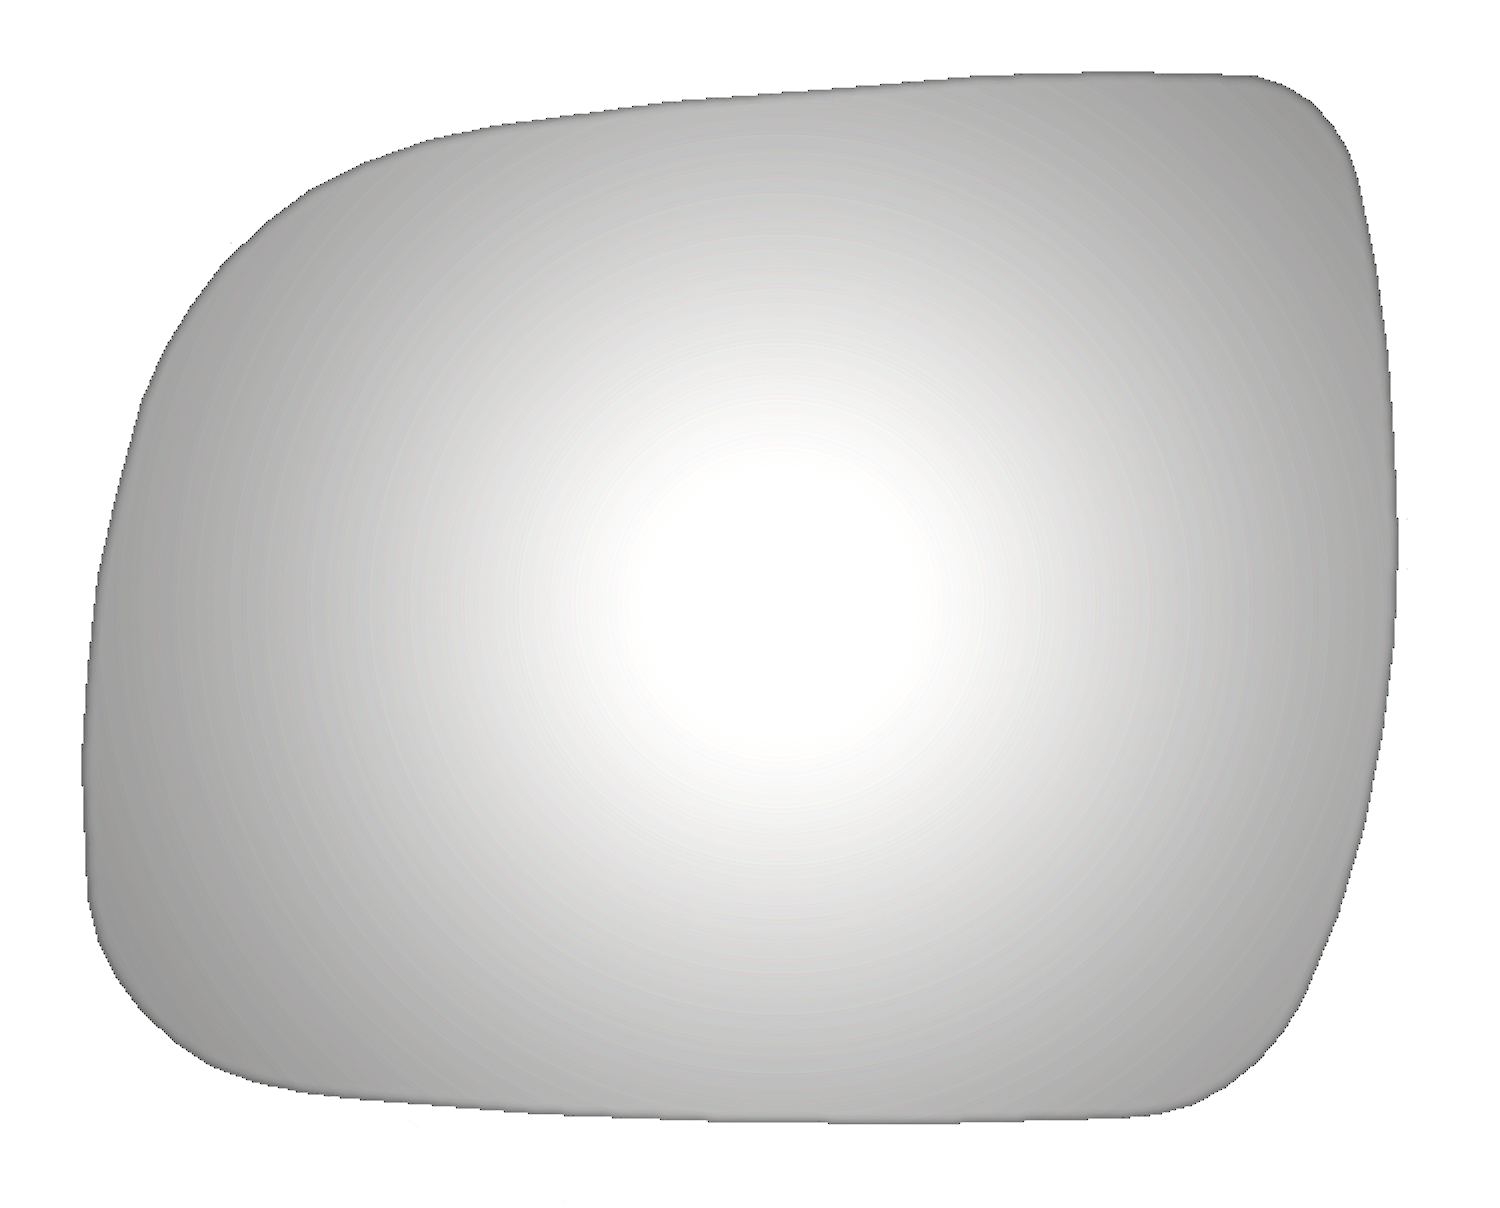 Toyota Tacoma 2012 2013 2014 Driver Side Mirror Glass